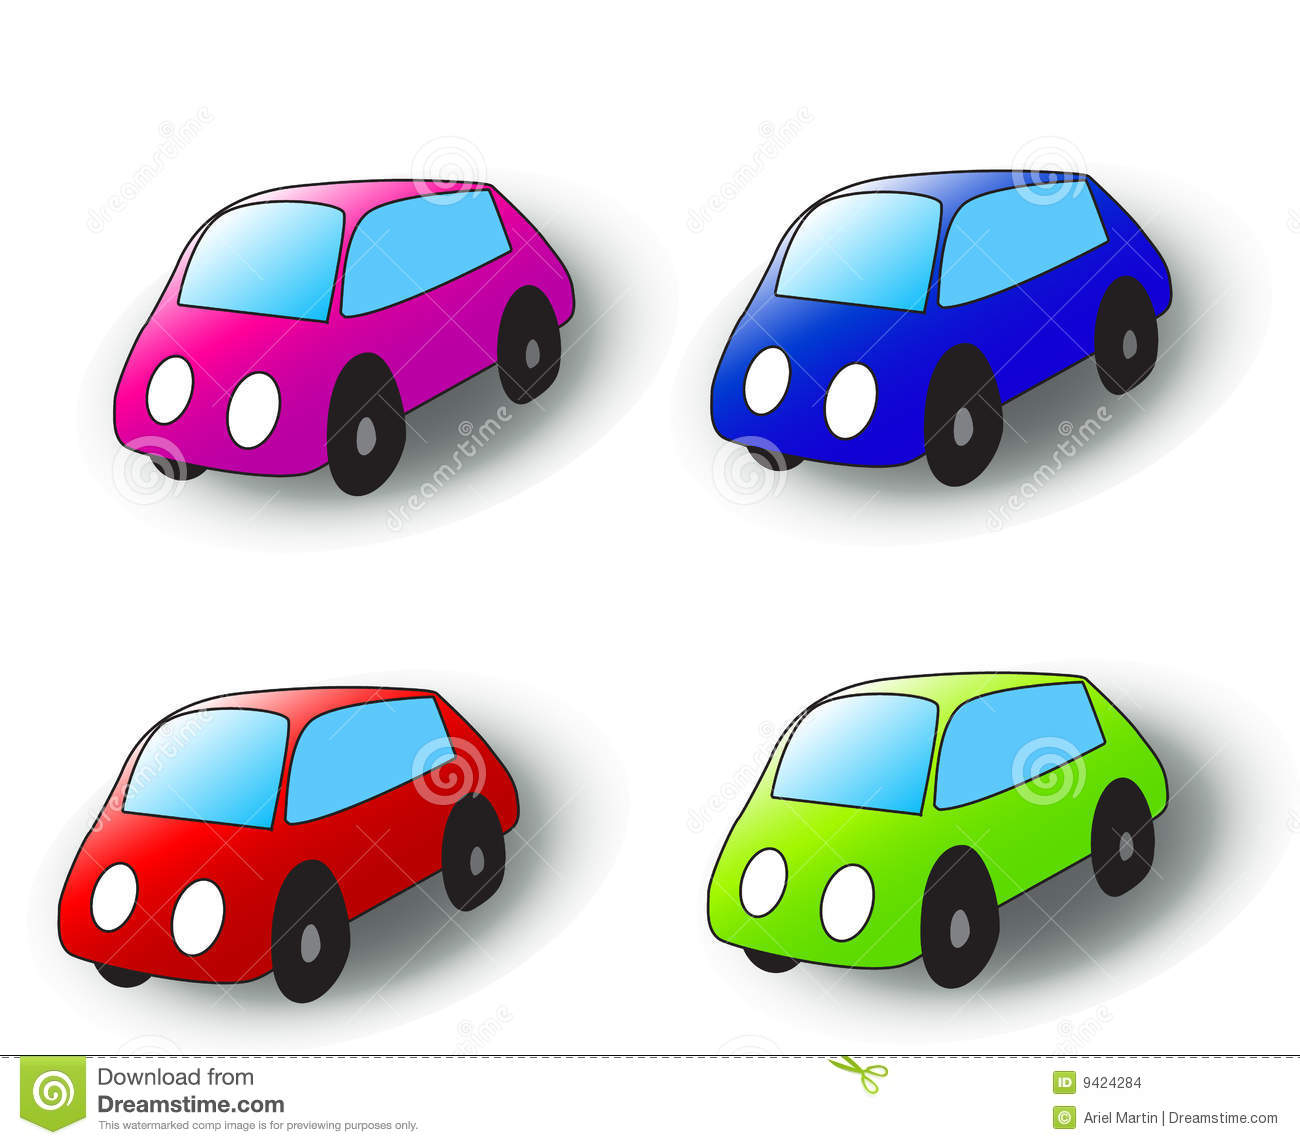 Vector image. Four cartoon cars in various colors.